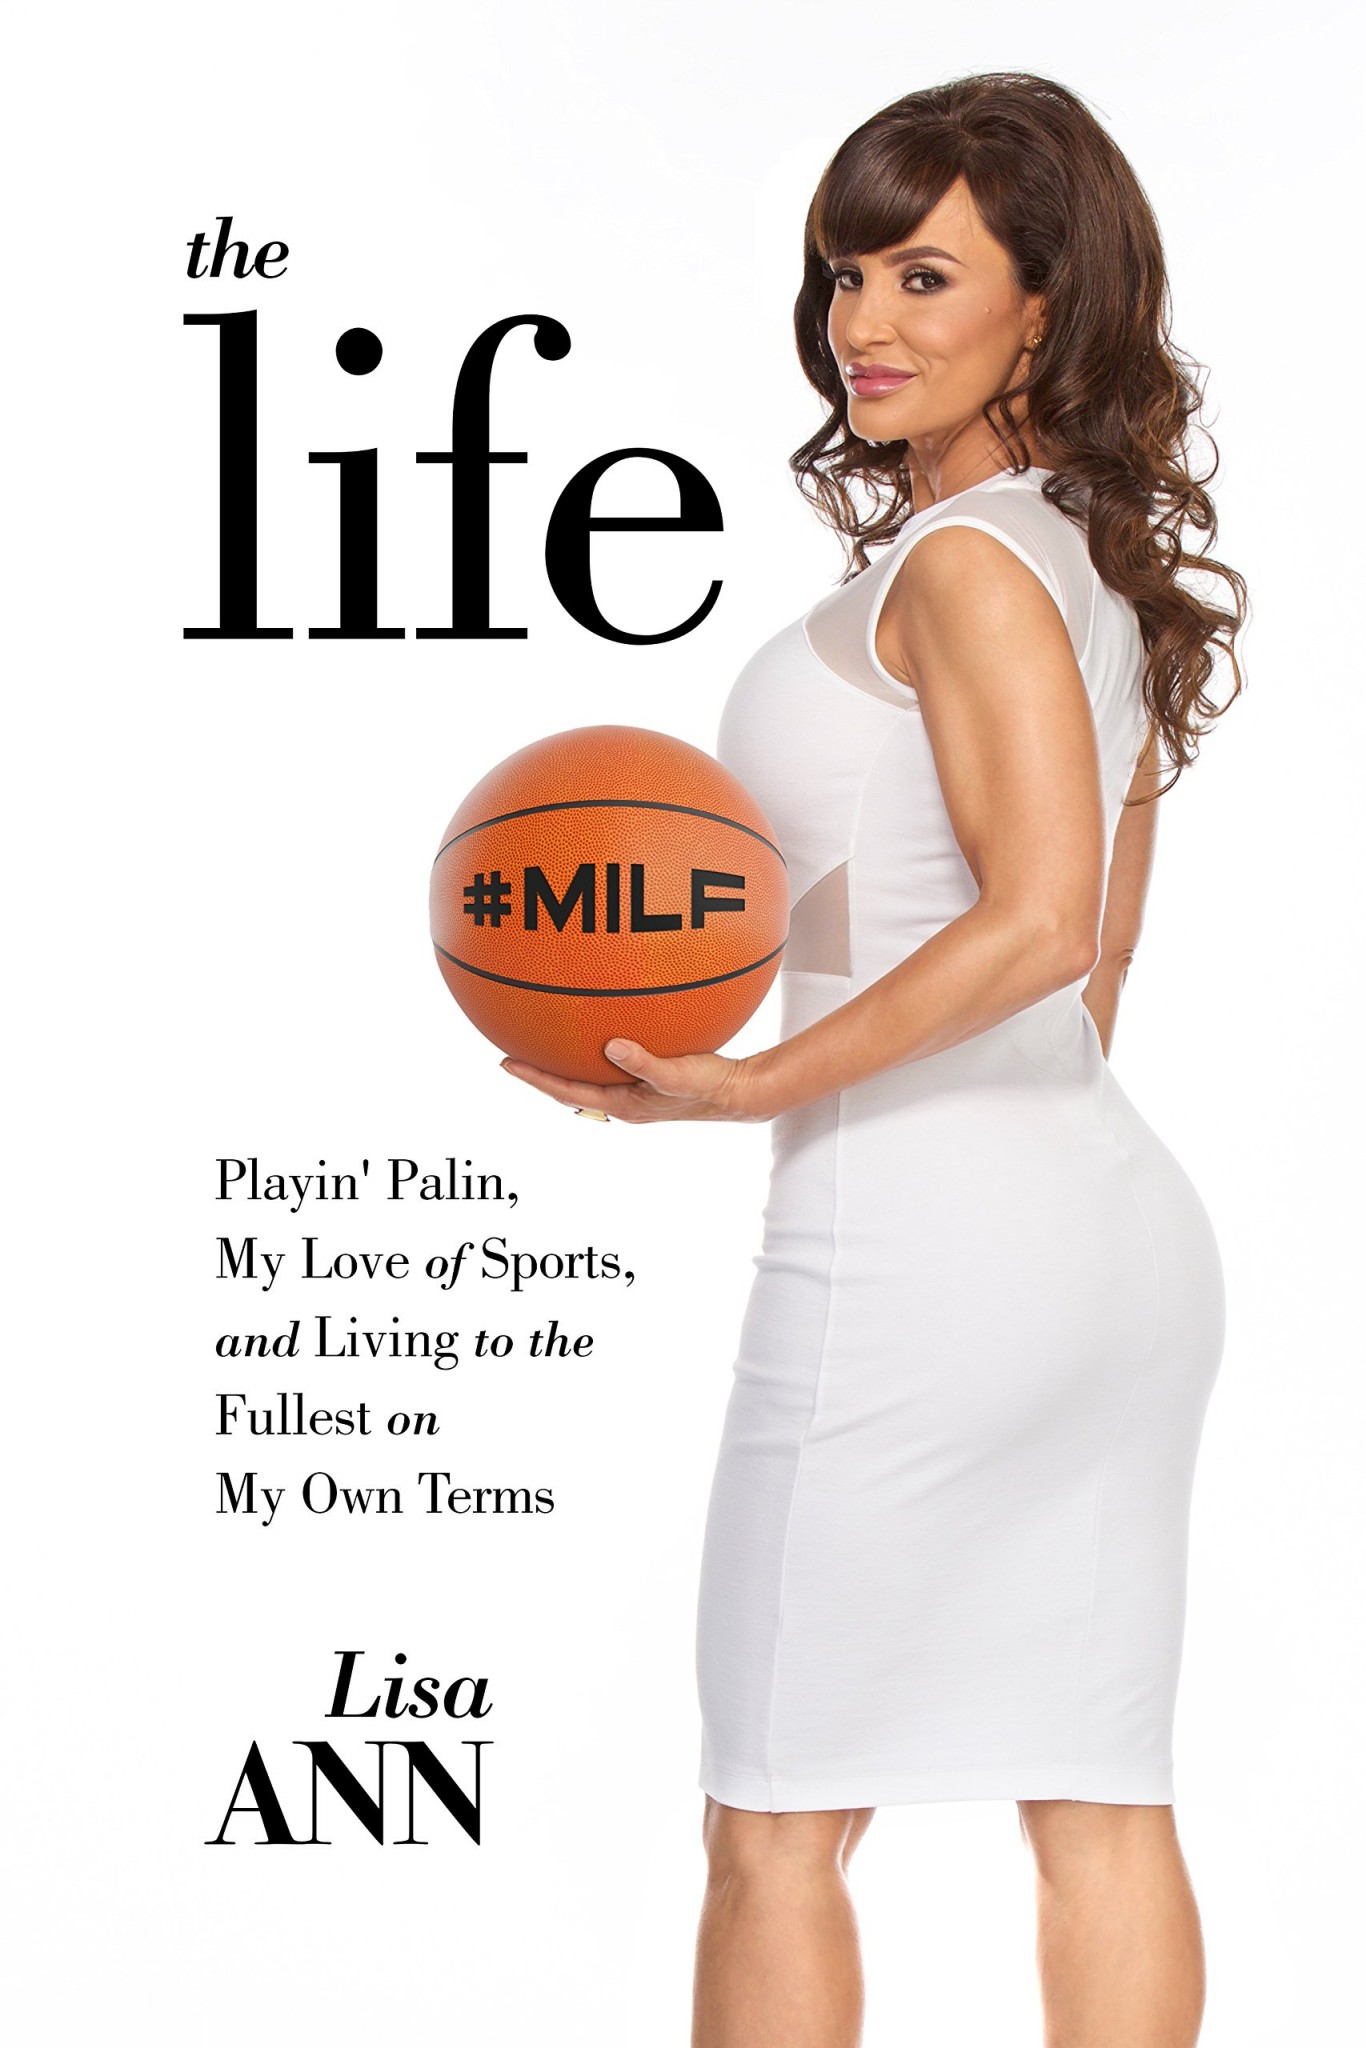 Lisa Ann's autobiography The Life – Loaded